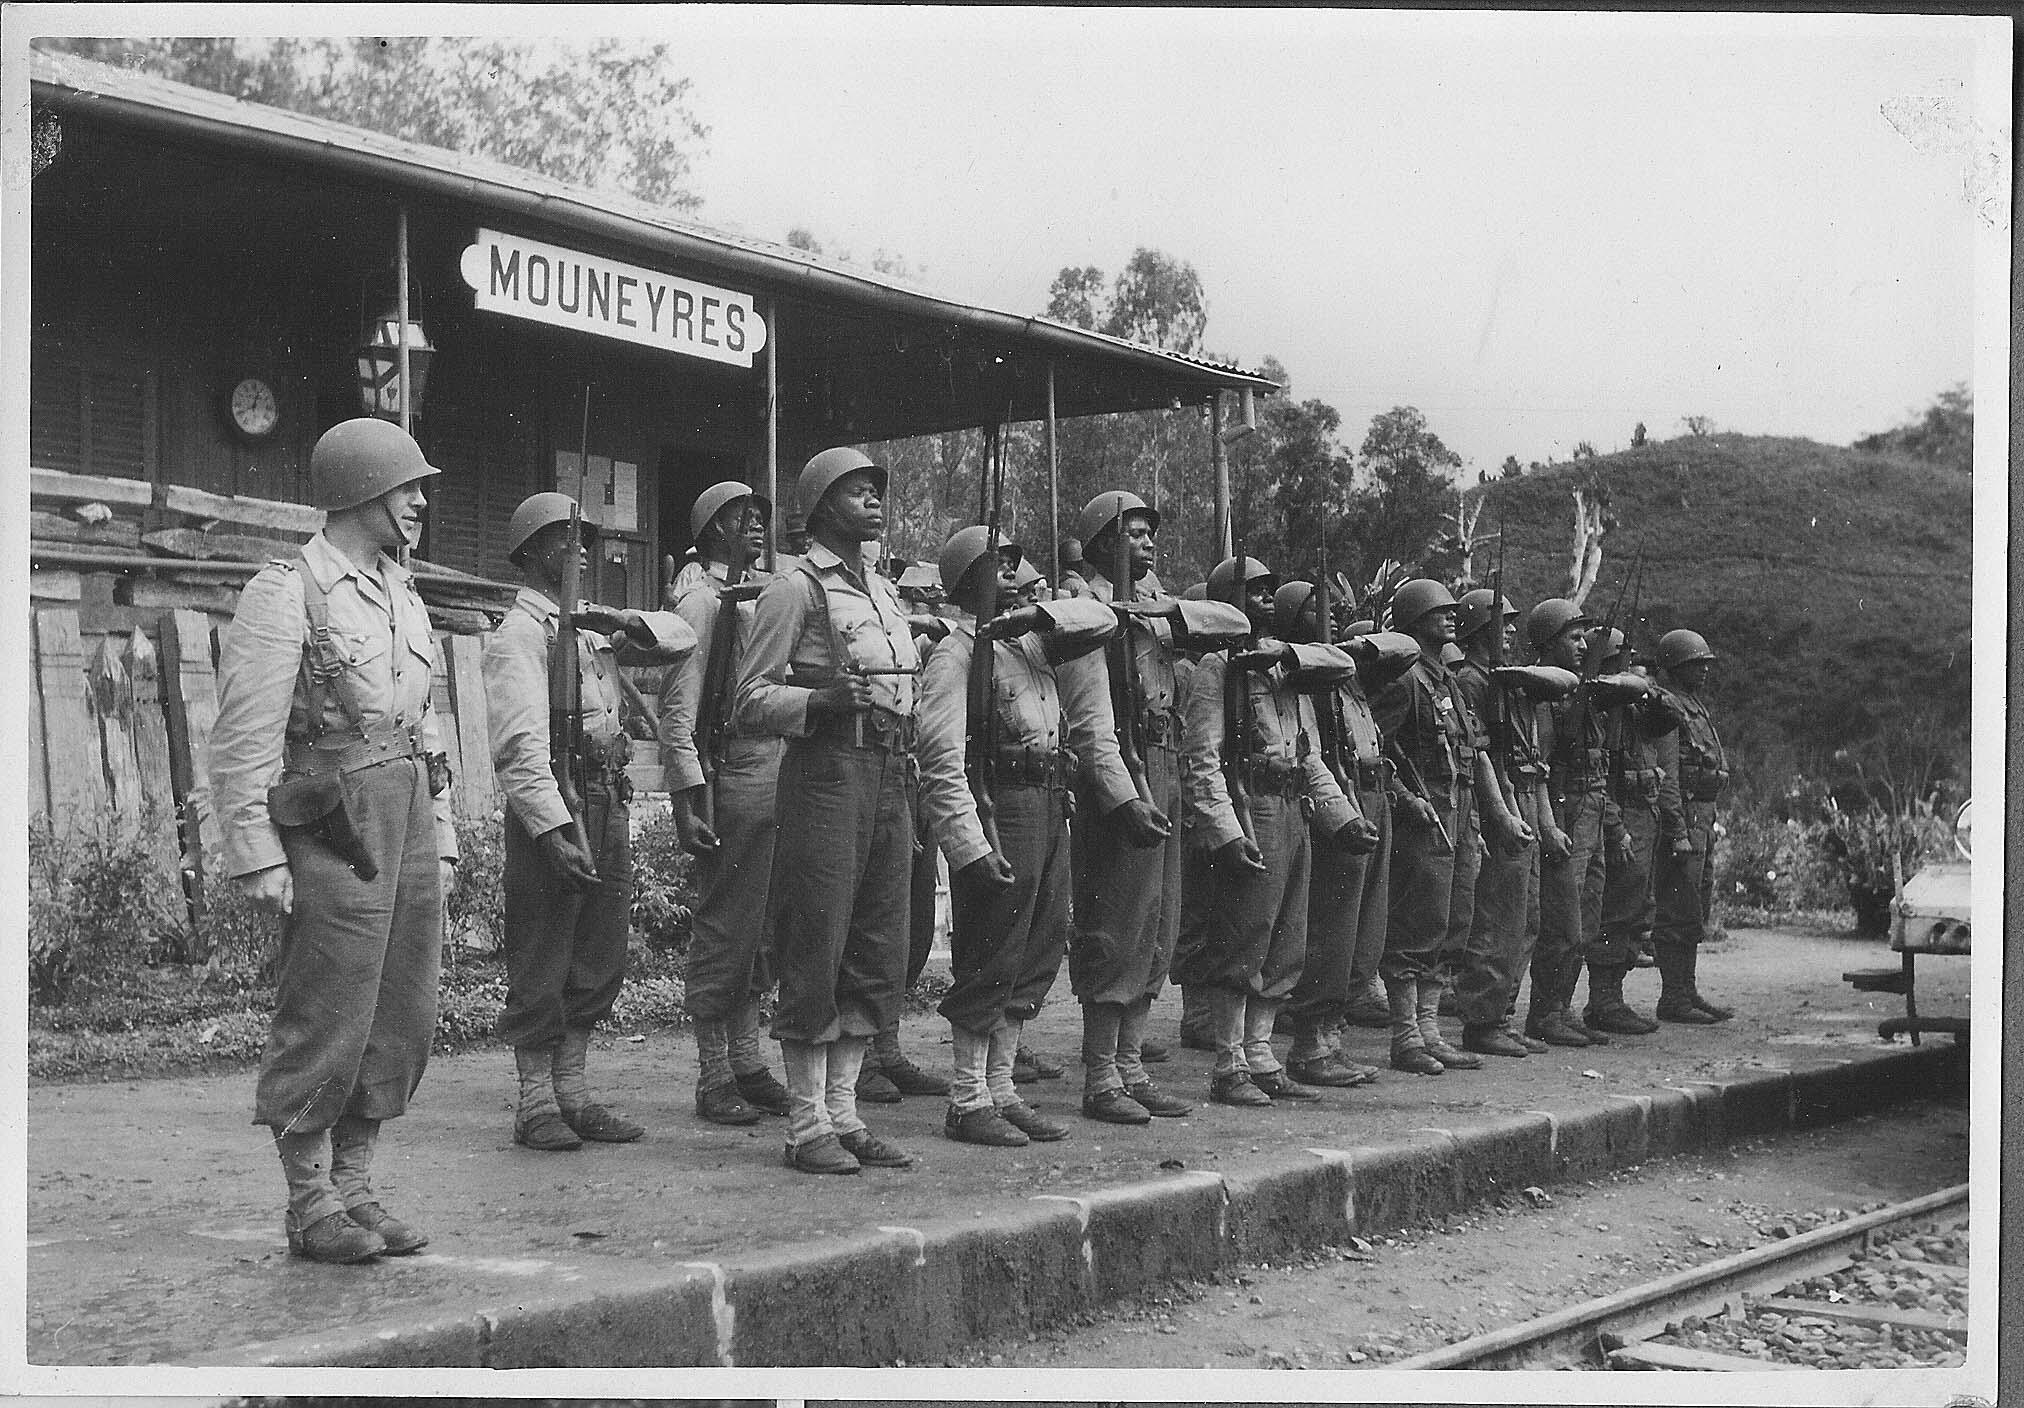 An infantry battalion in Madagascar during WWII.